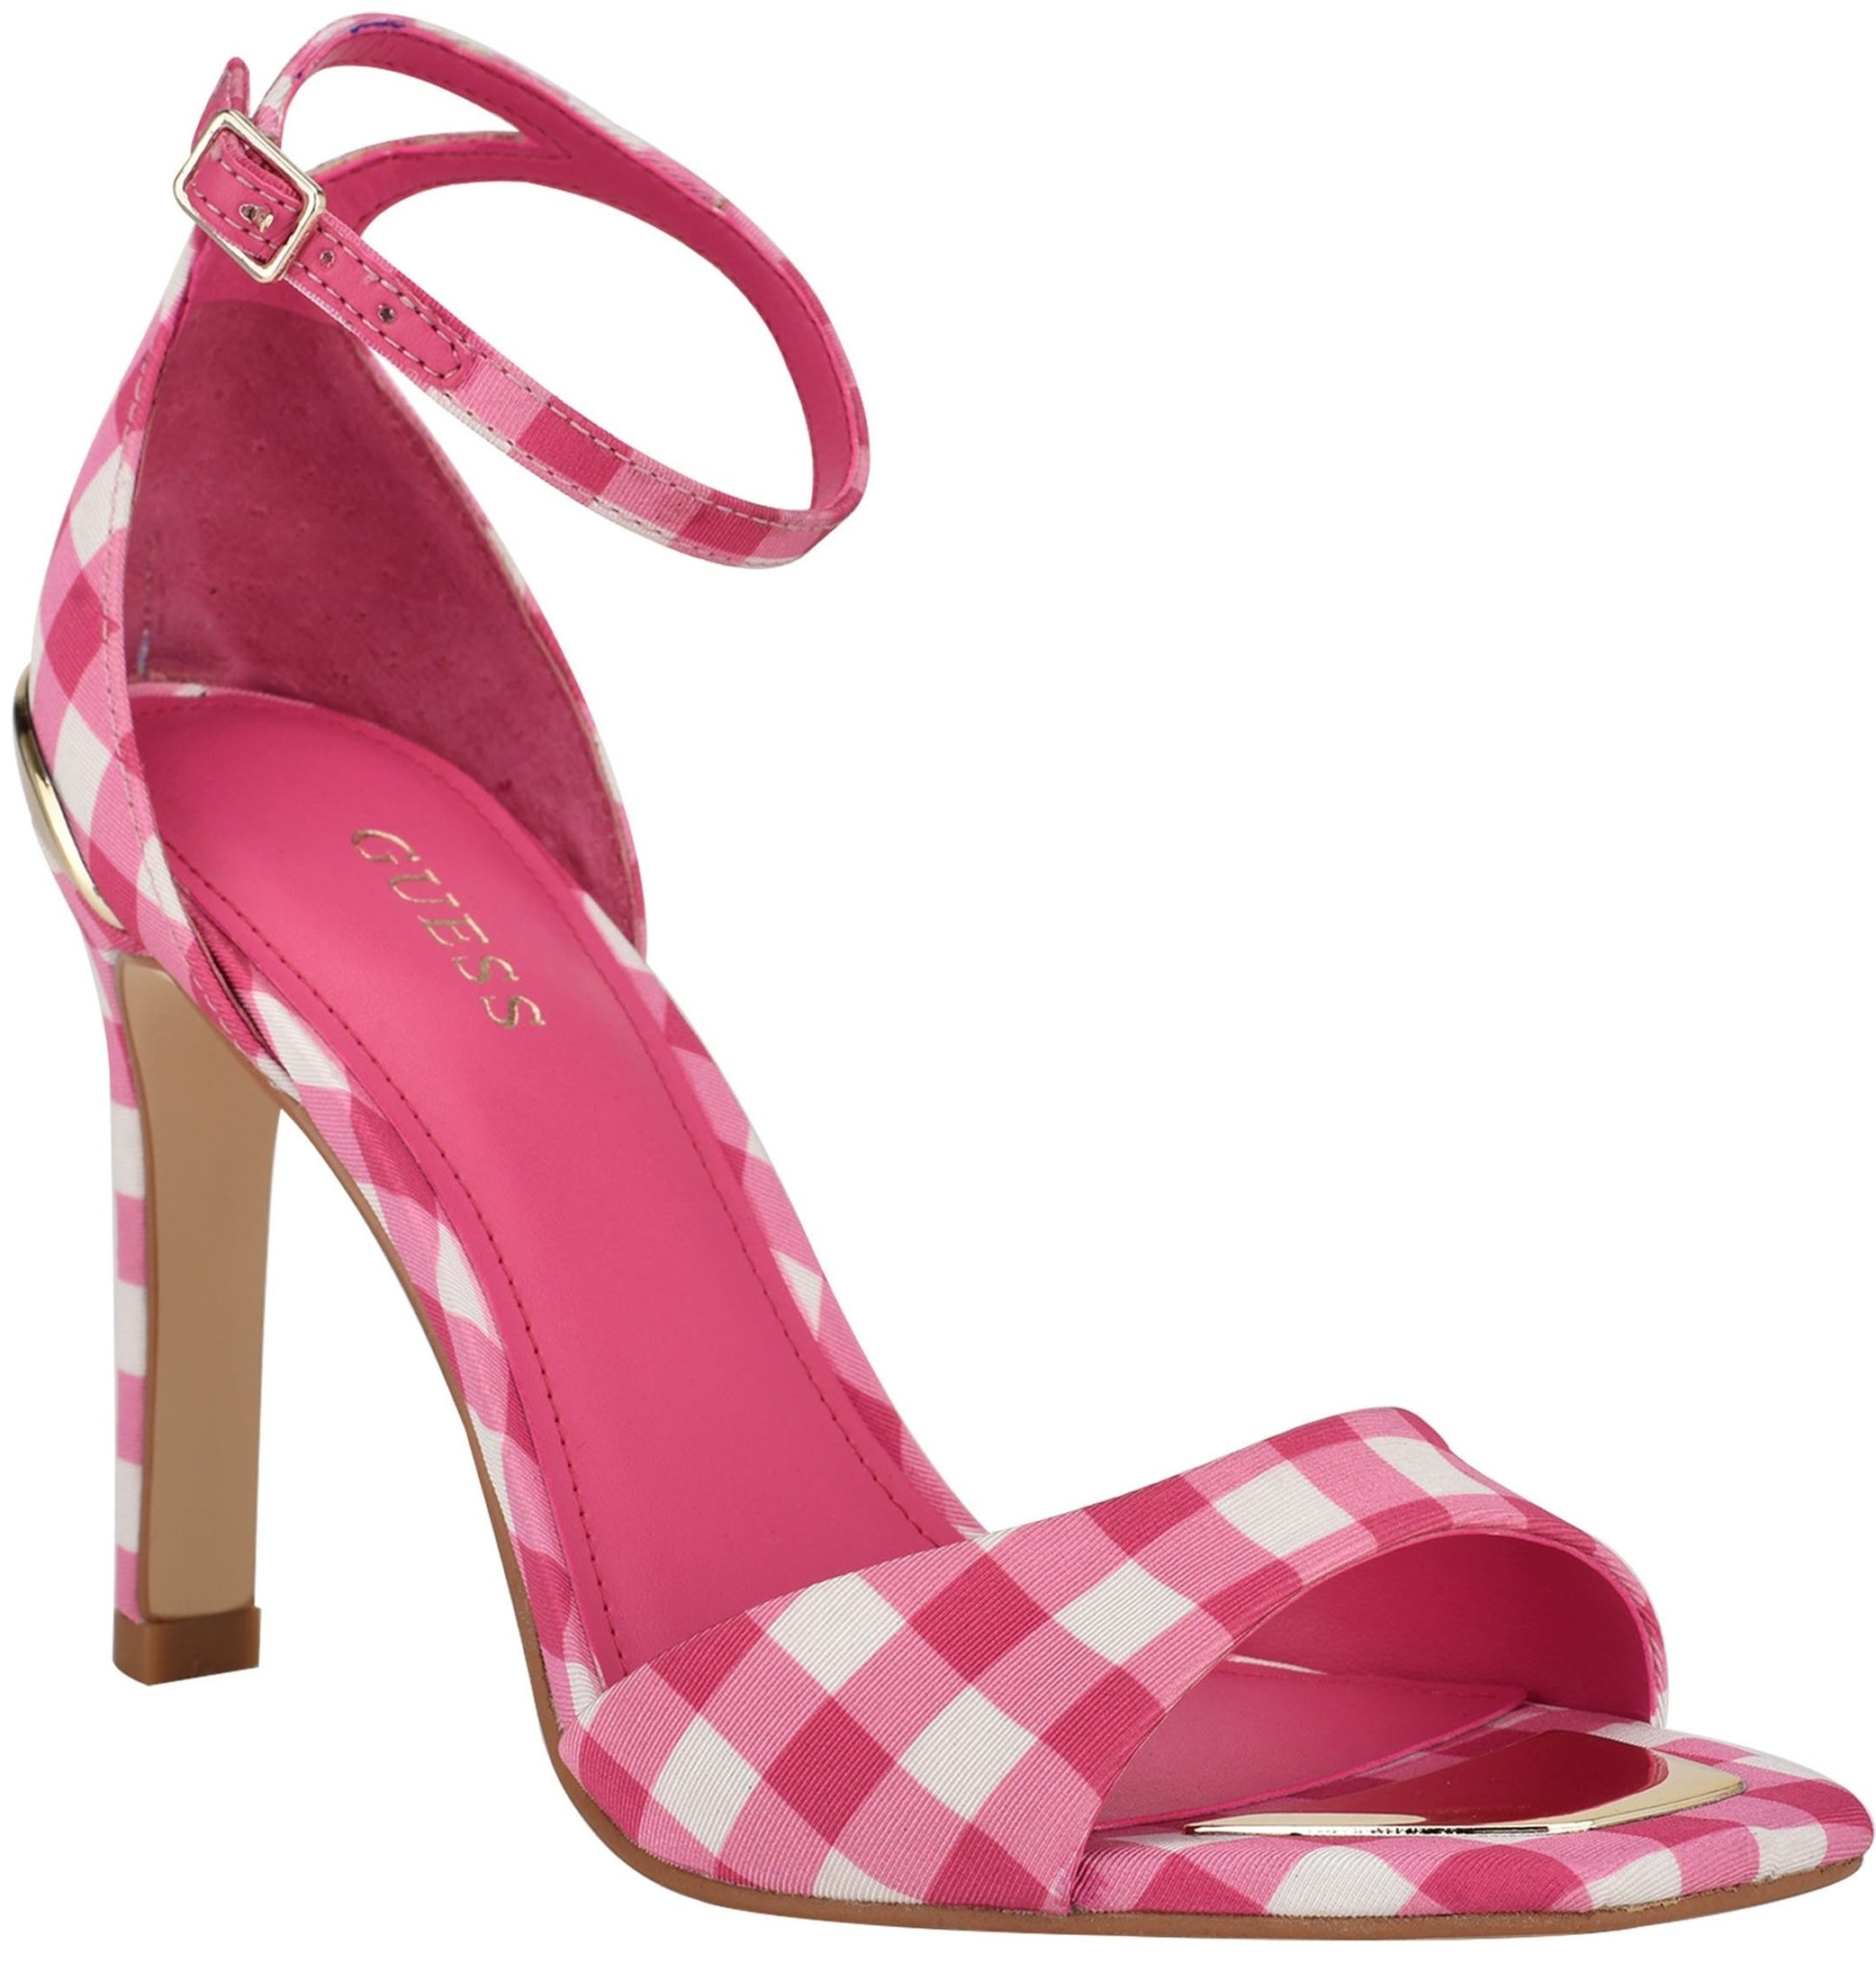 Stroll like a supermodel in this pink gingham dress sandal featuring an appealing logo metal rand and slim covered heel